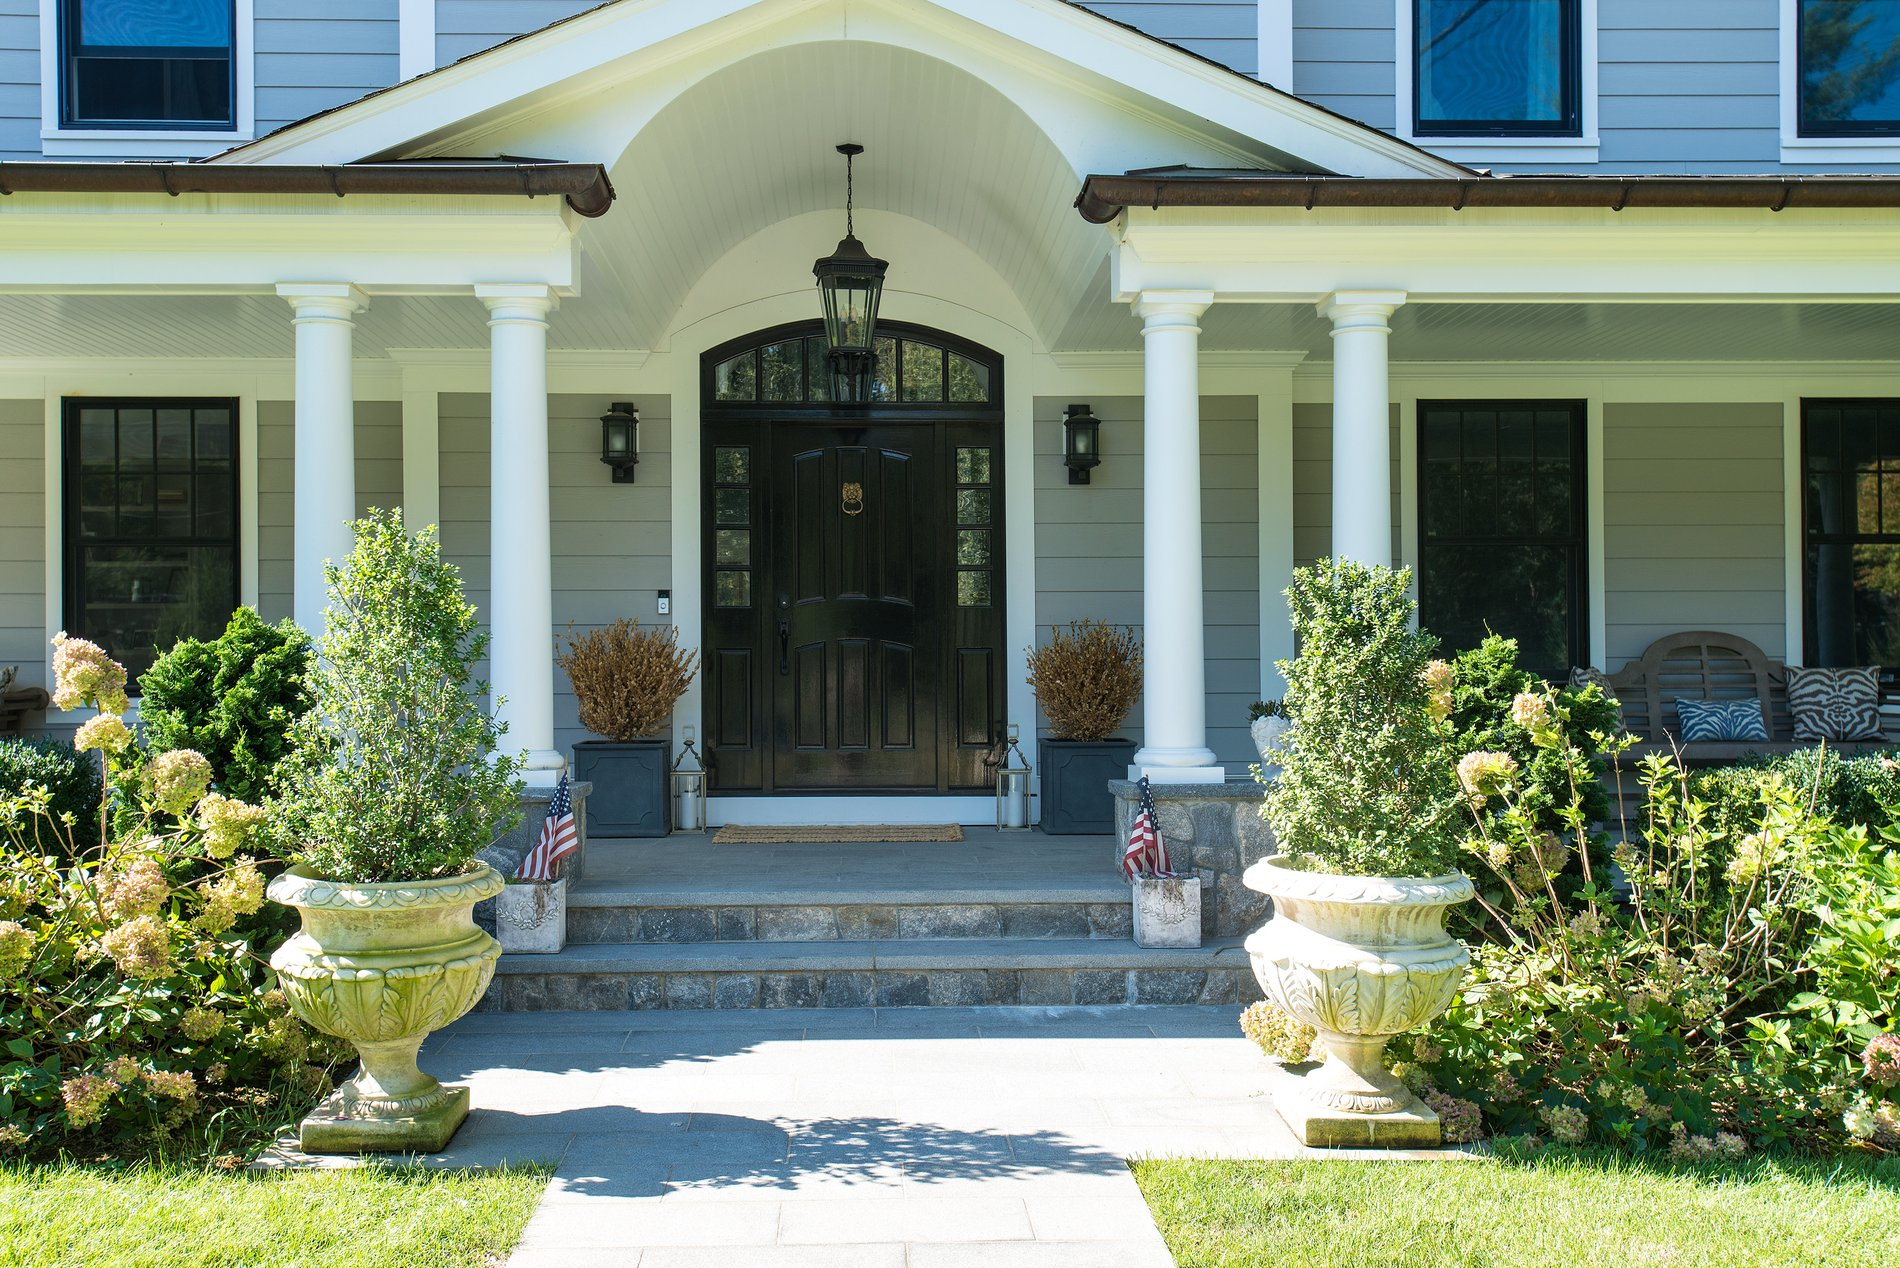 Covered porch with a blue stone paver floor. Gray siding, white trim and a black front door.